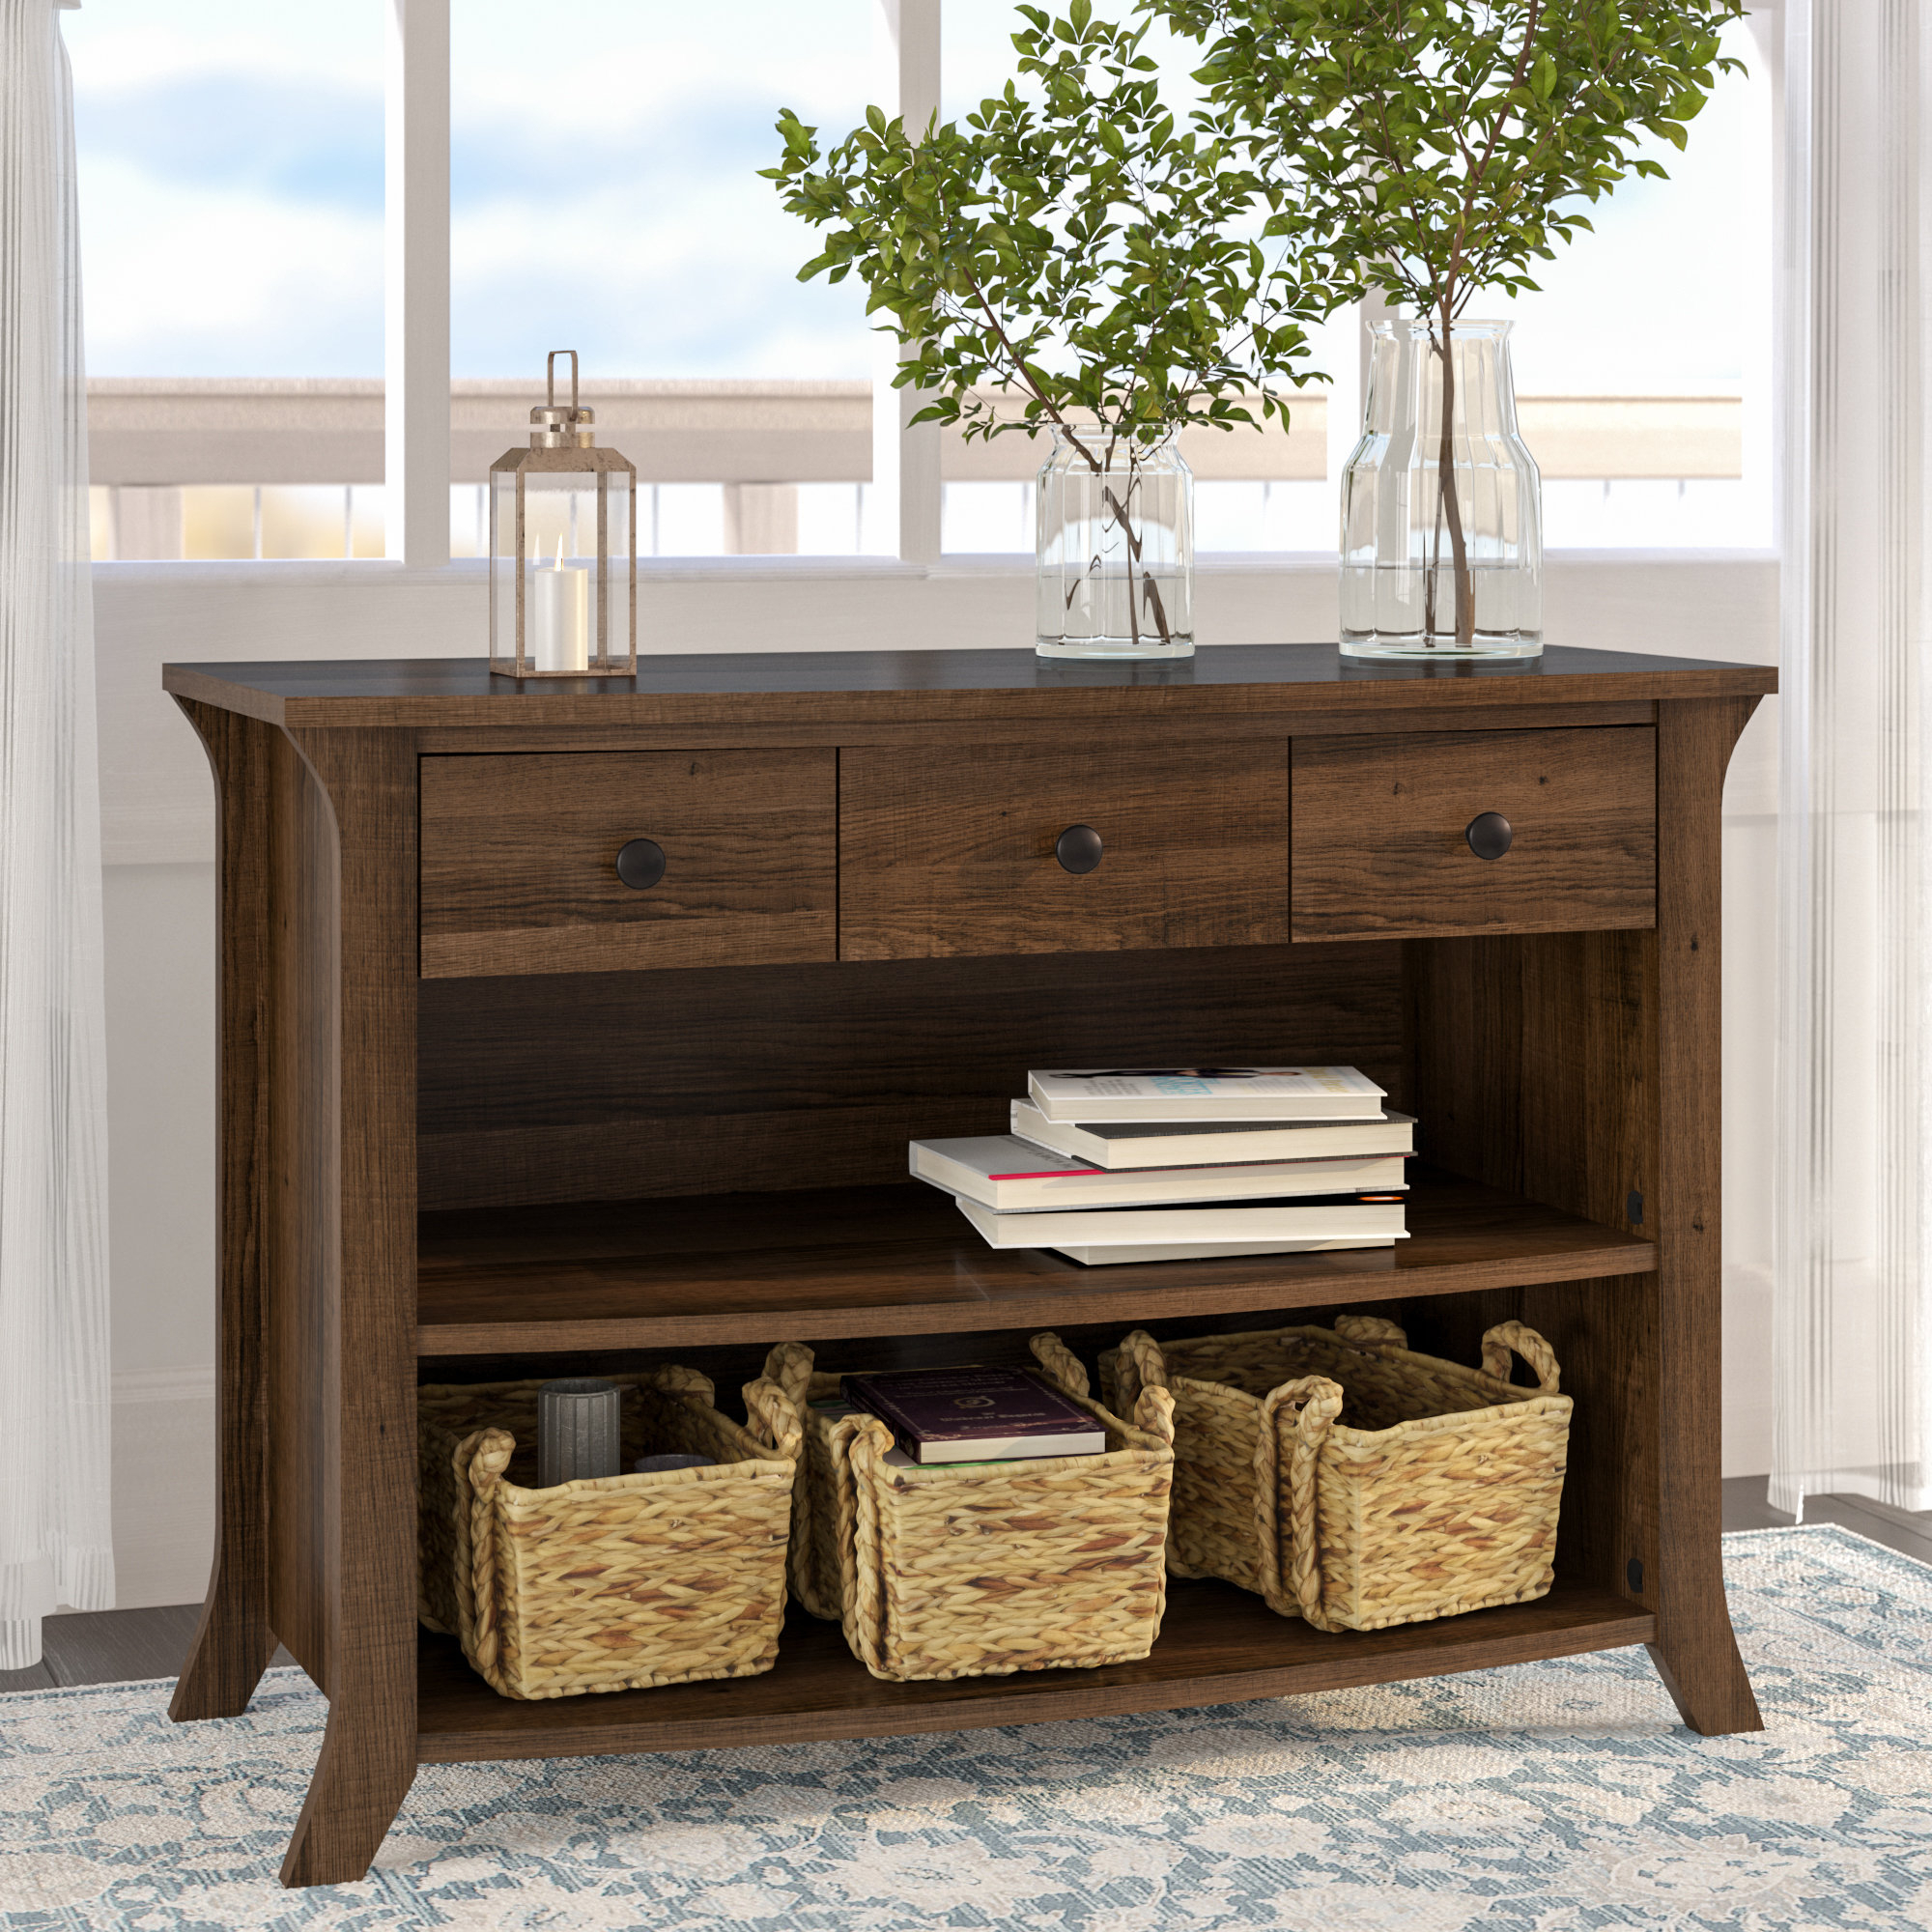 Drawers Console Tables You'll Love | Wayfair Inside Layered Wood Small Square Console Tables (View 12 of 30)